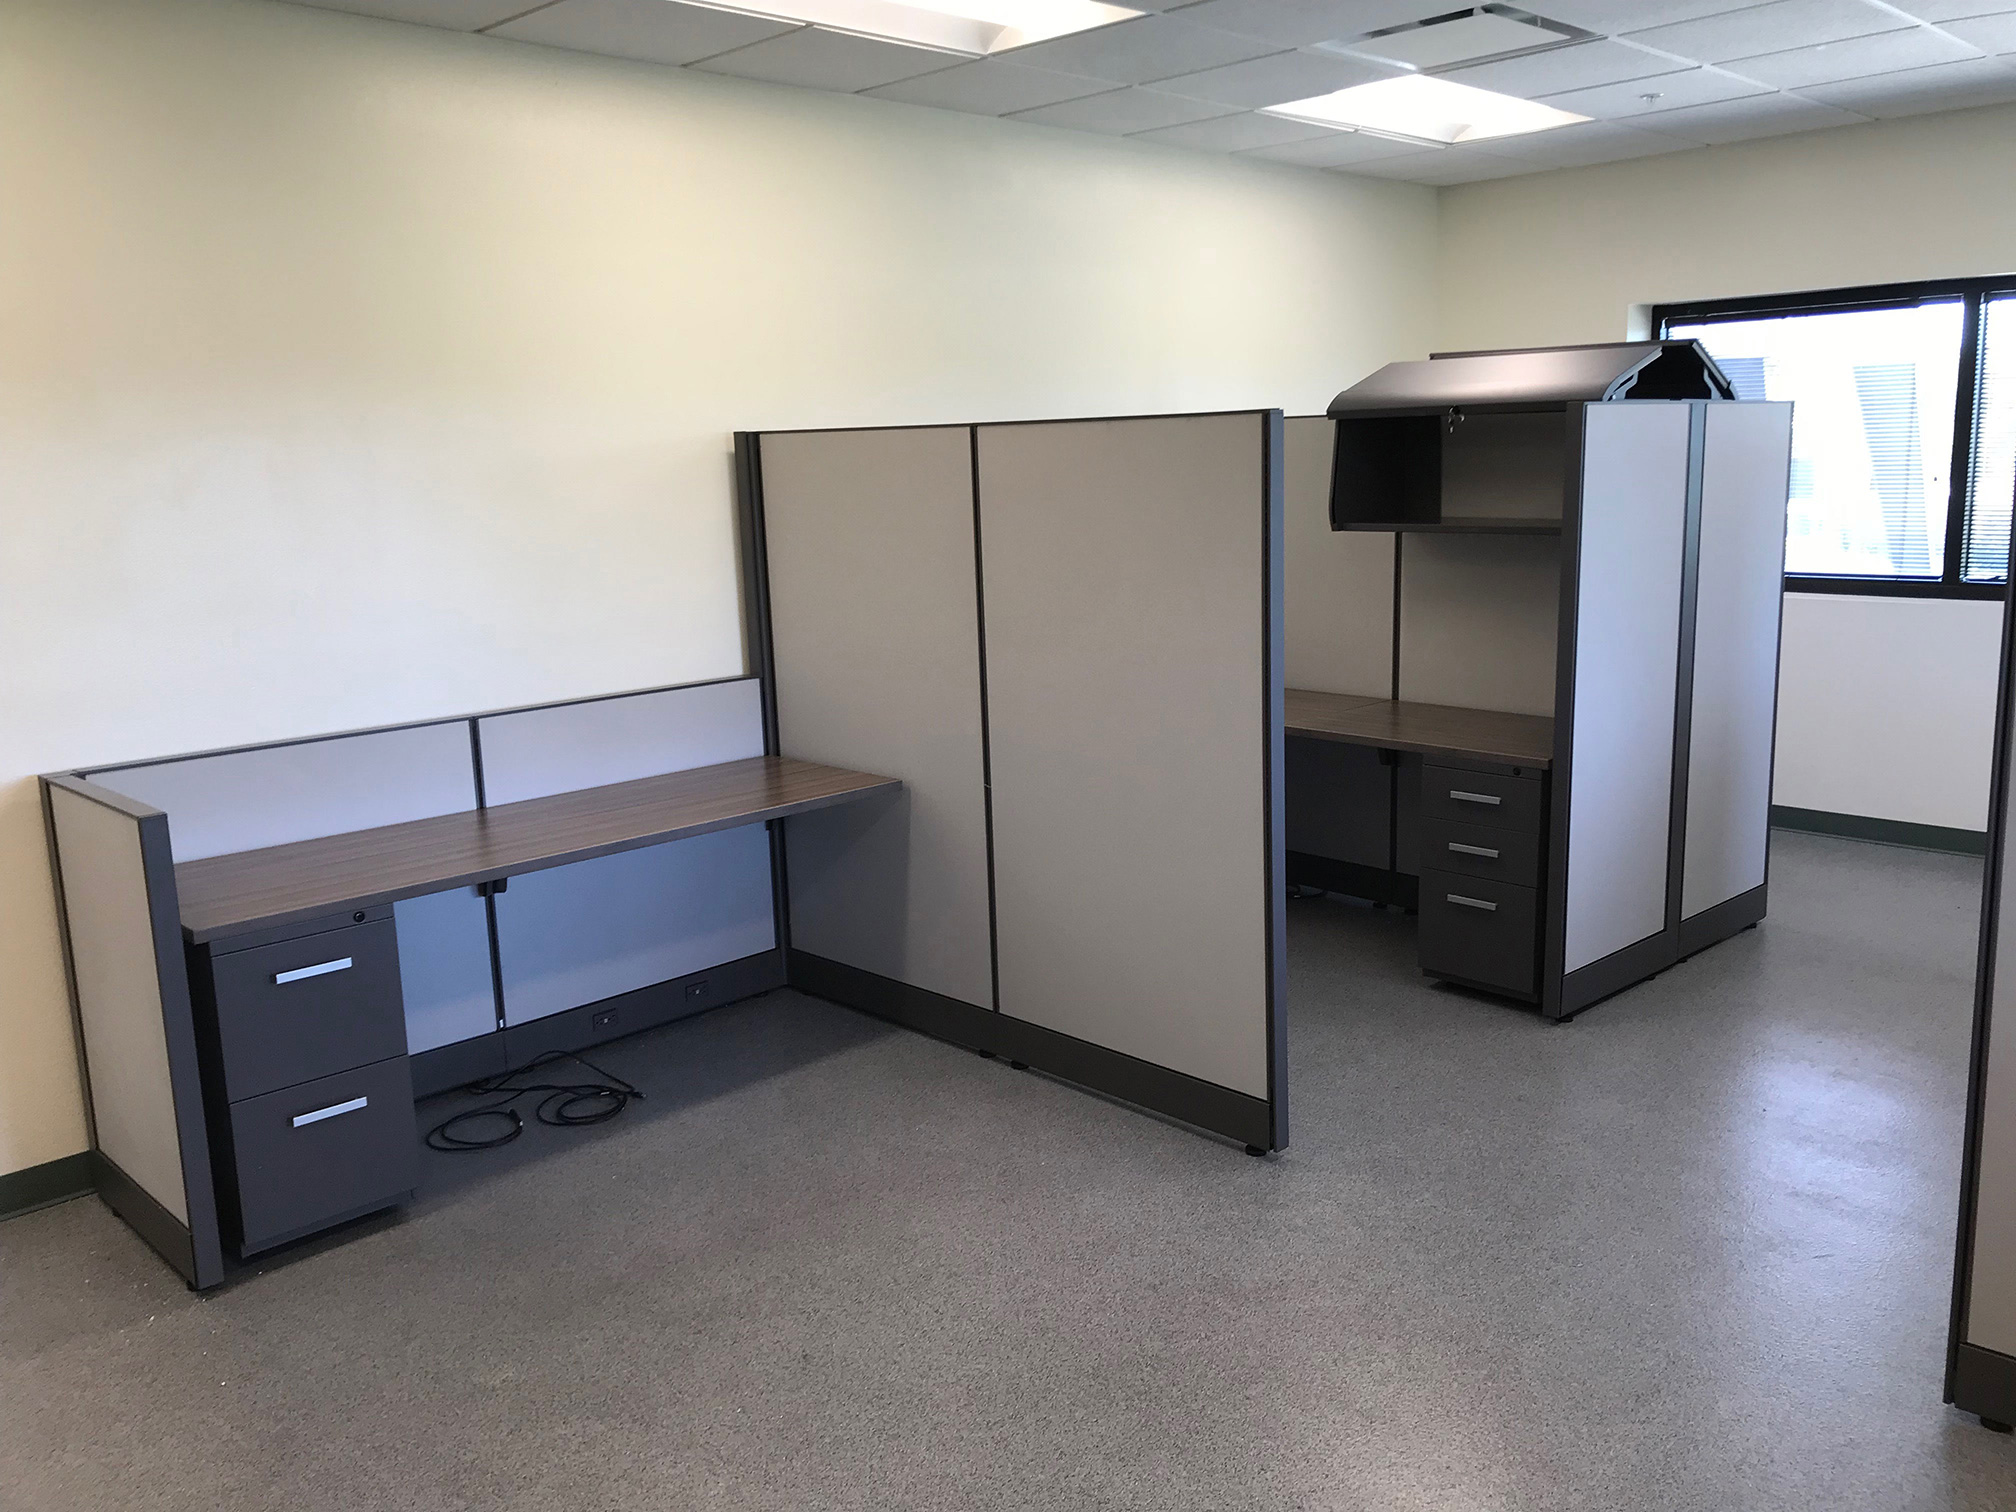 office-cubicles-for-sale-in-gainesville-florida-3-1.jpg